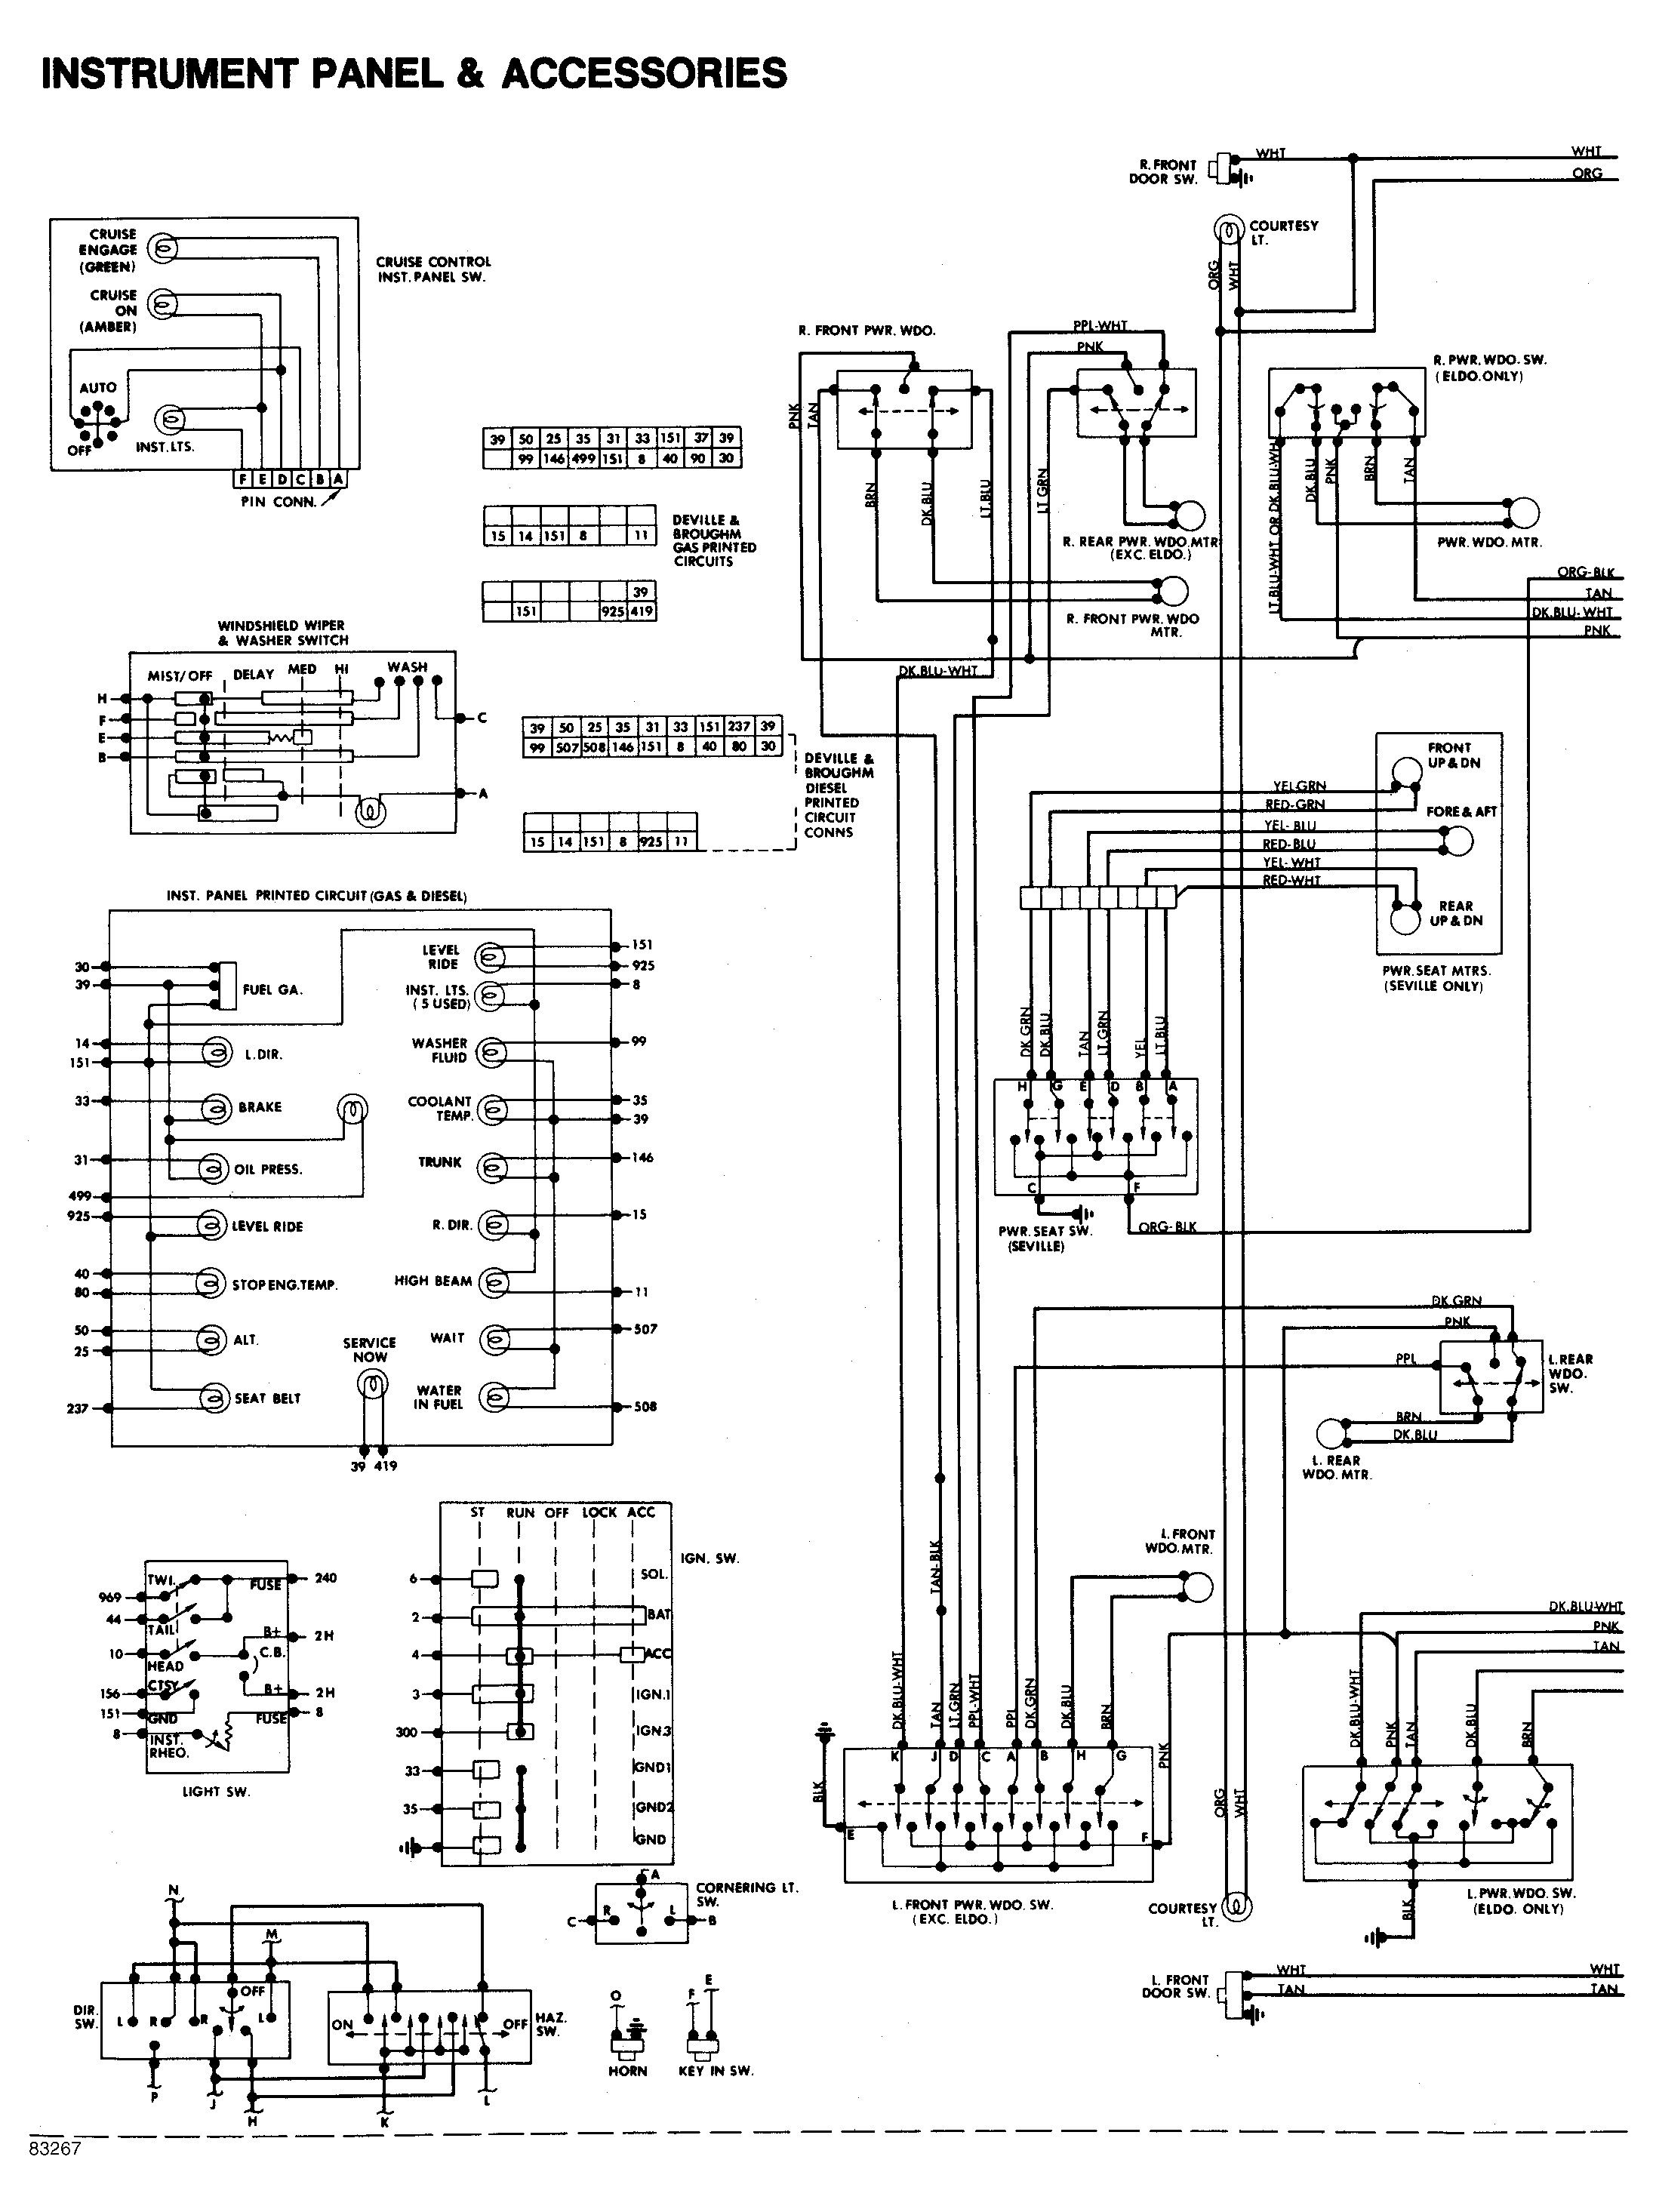 2000 honda accord radio wiring diagram fresh daewoo ... 2000 honda accord wiring diagrams